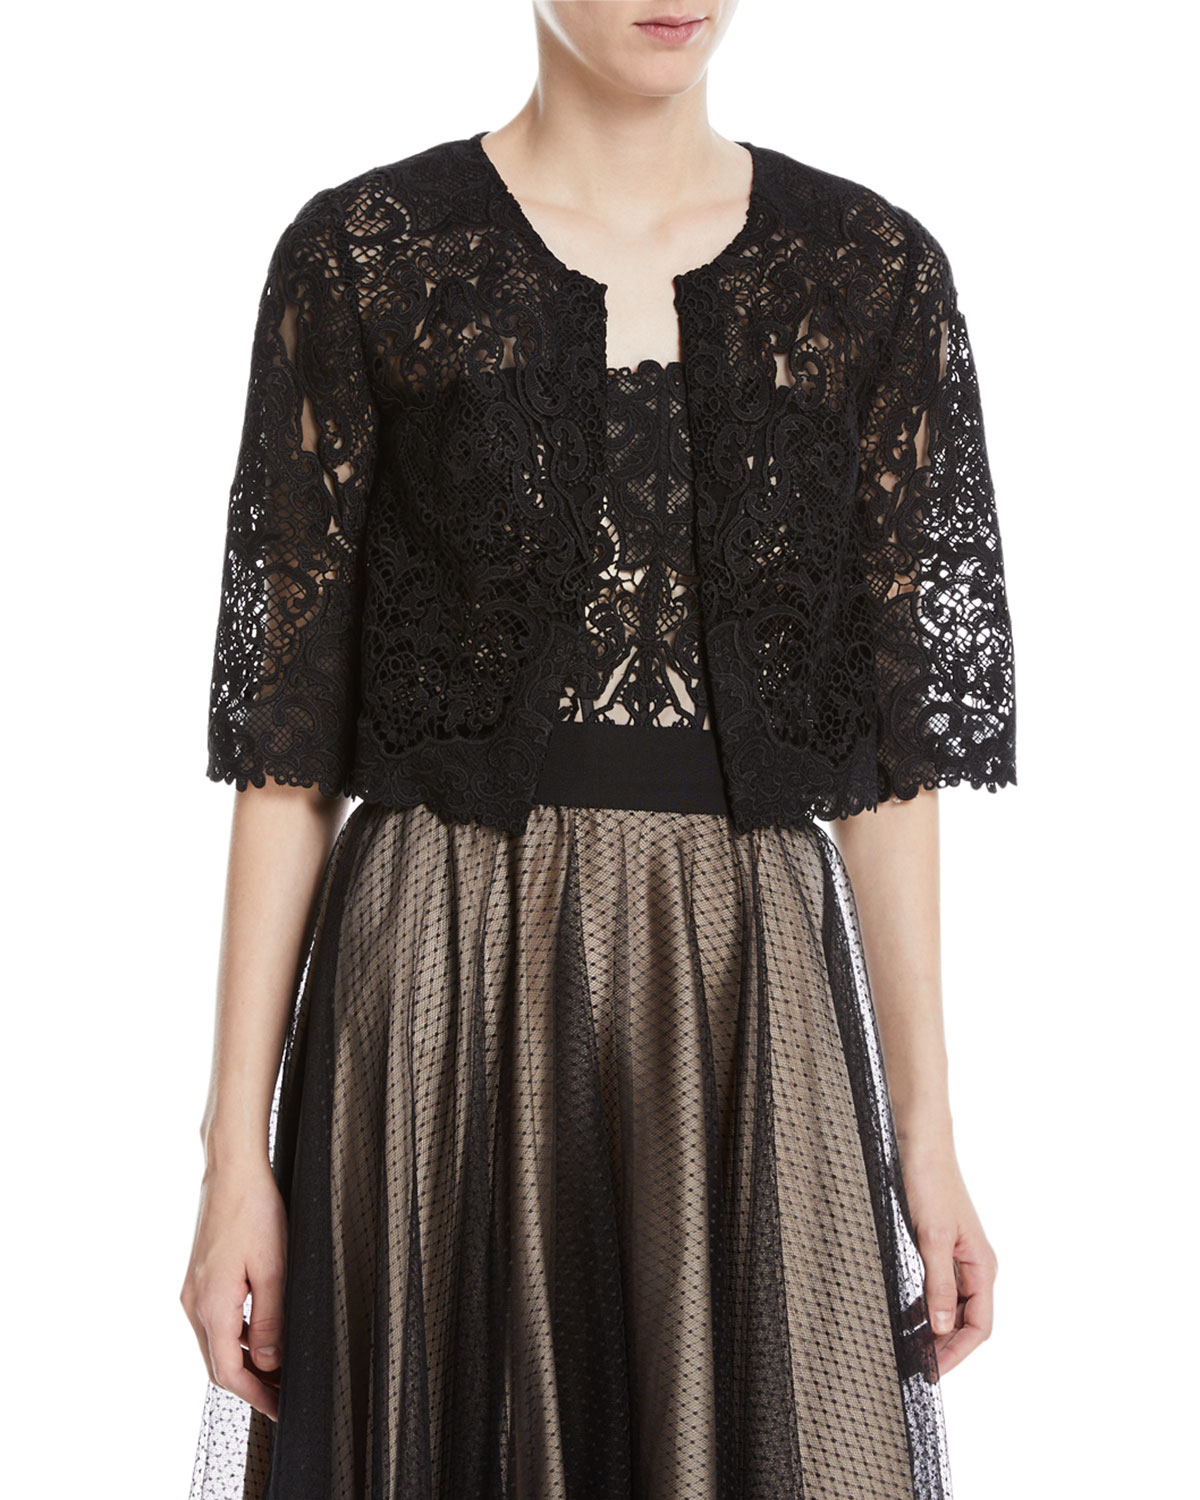 Kalista Graphic Lace Topper Jacket